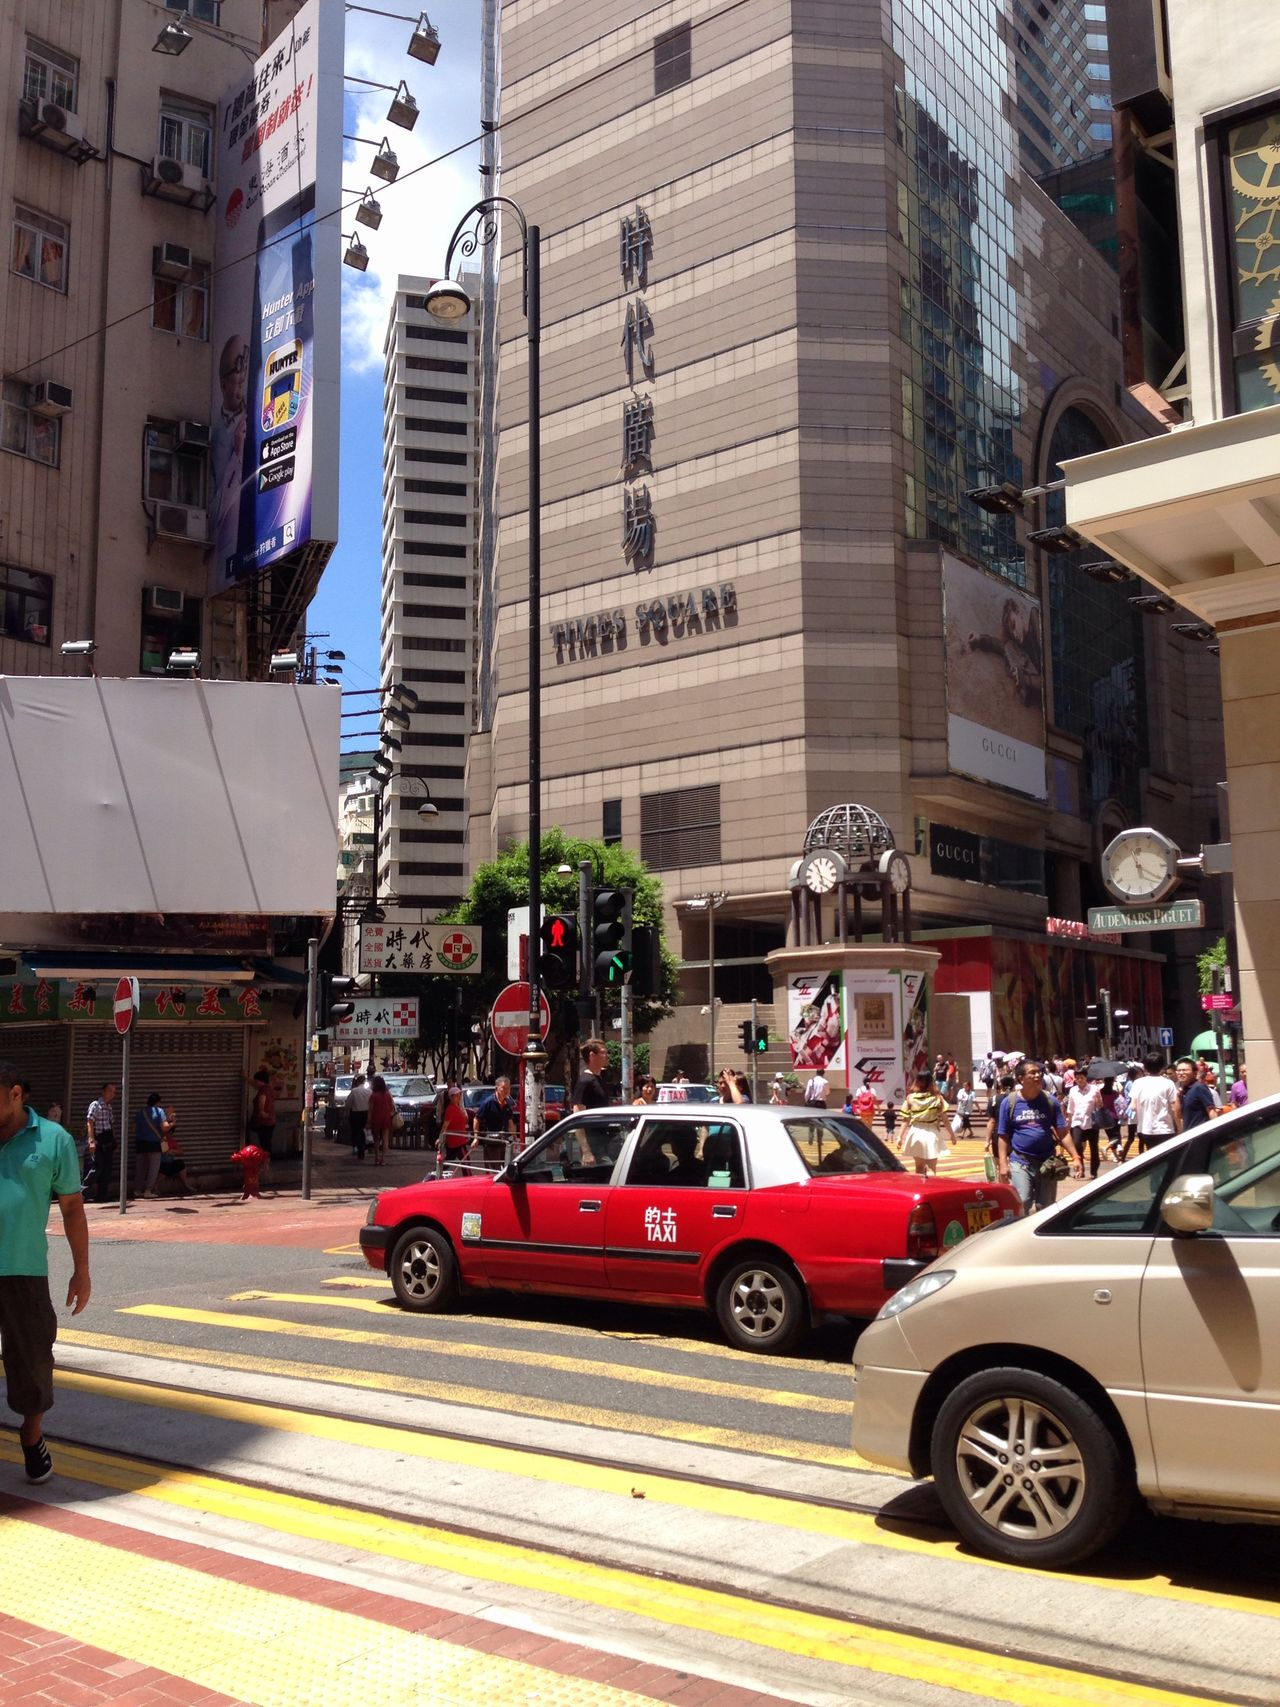 Architecture Building Building Exterior Built Structure City City Life City Street Day Hong Kong HongKong Land Vehicle Lifestyles Mode Of Transport Outdoors Parked Parking Road Stationary Street